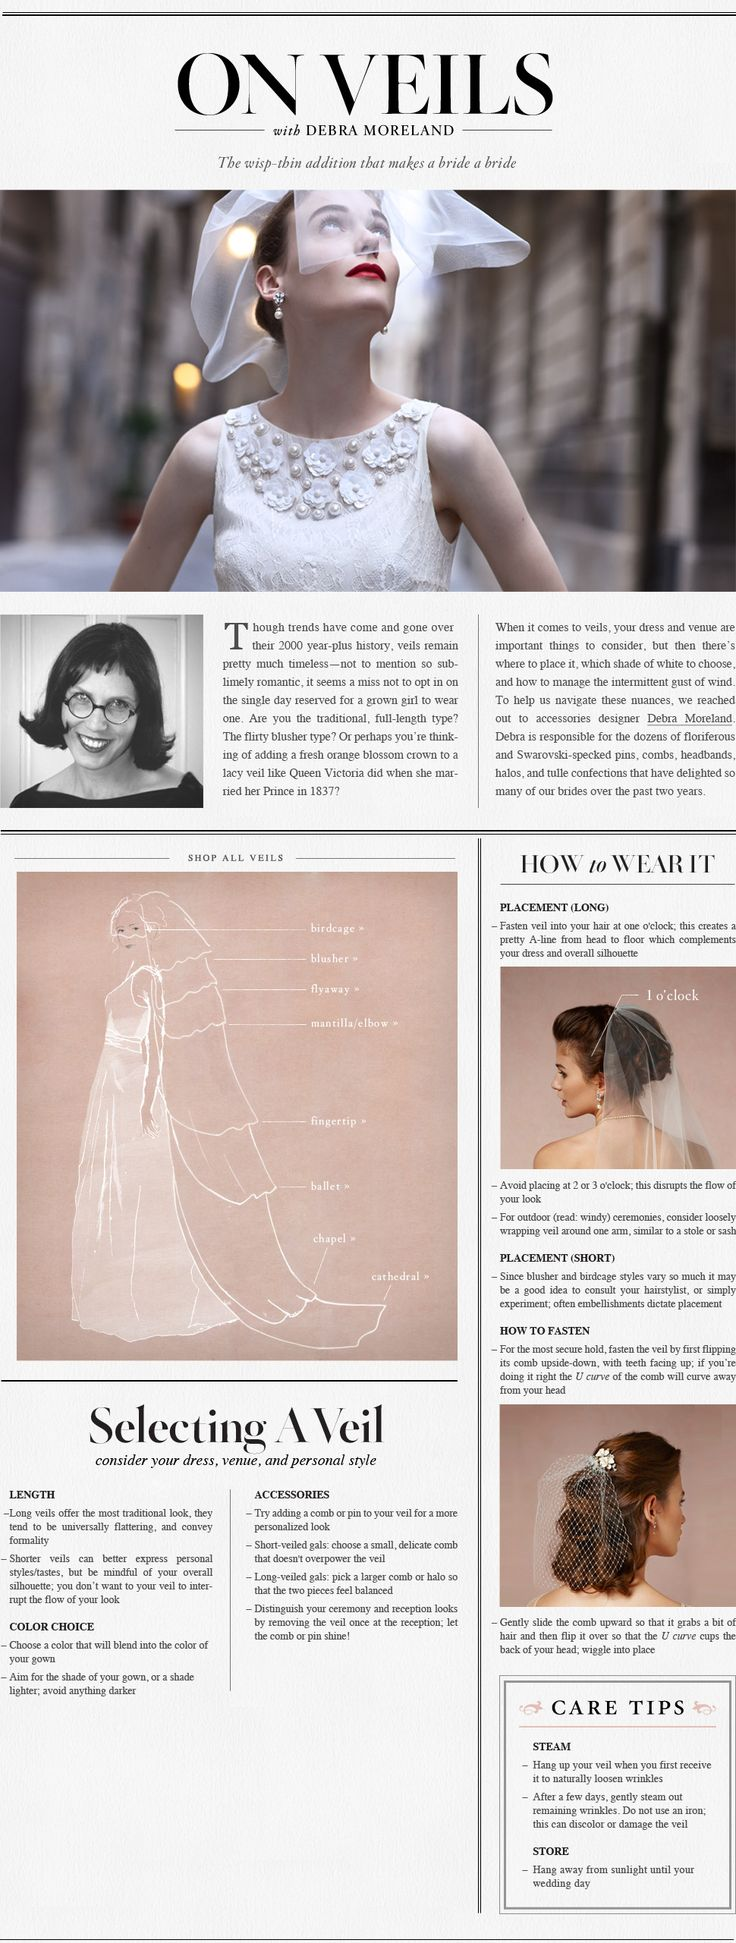 BHLDN's great guide to wedding veils!